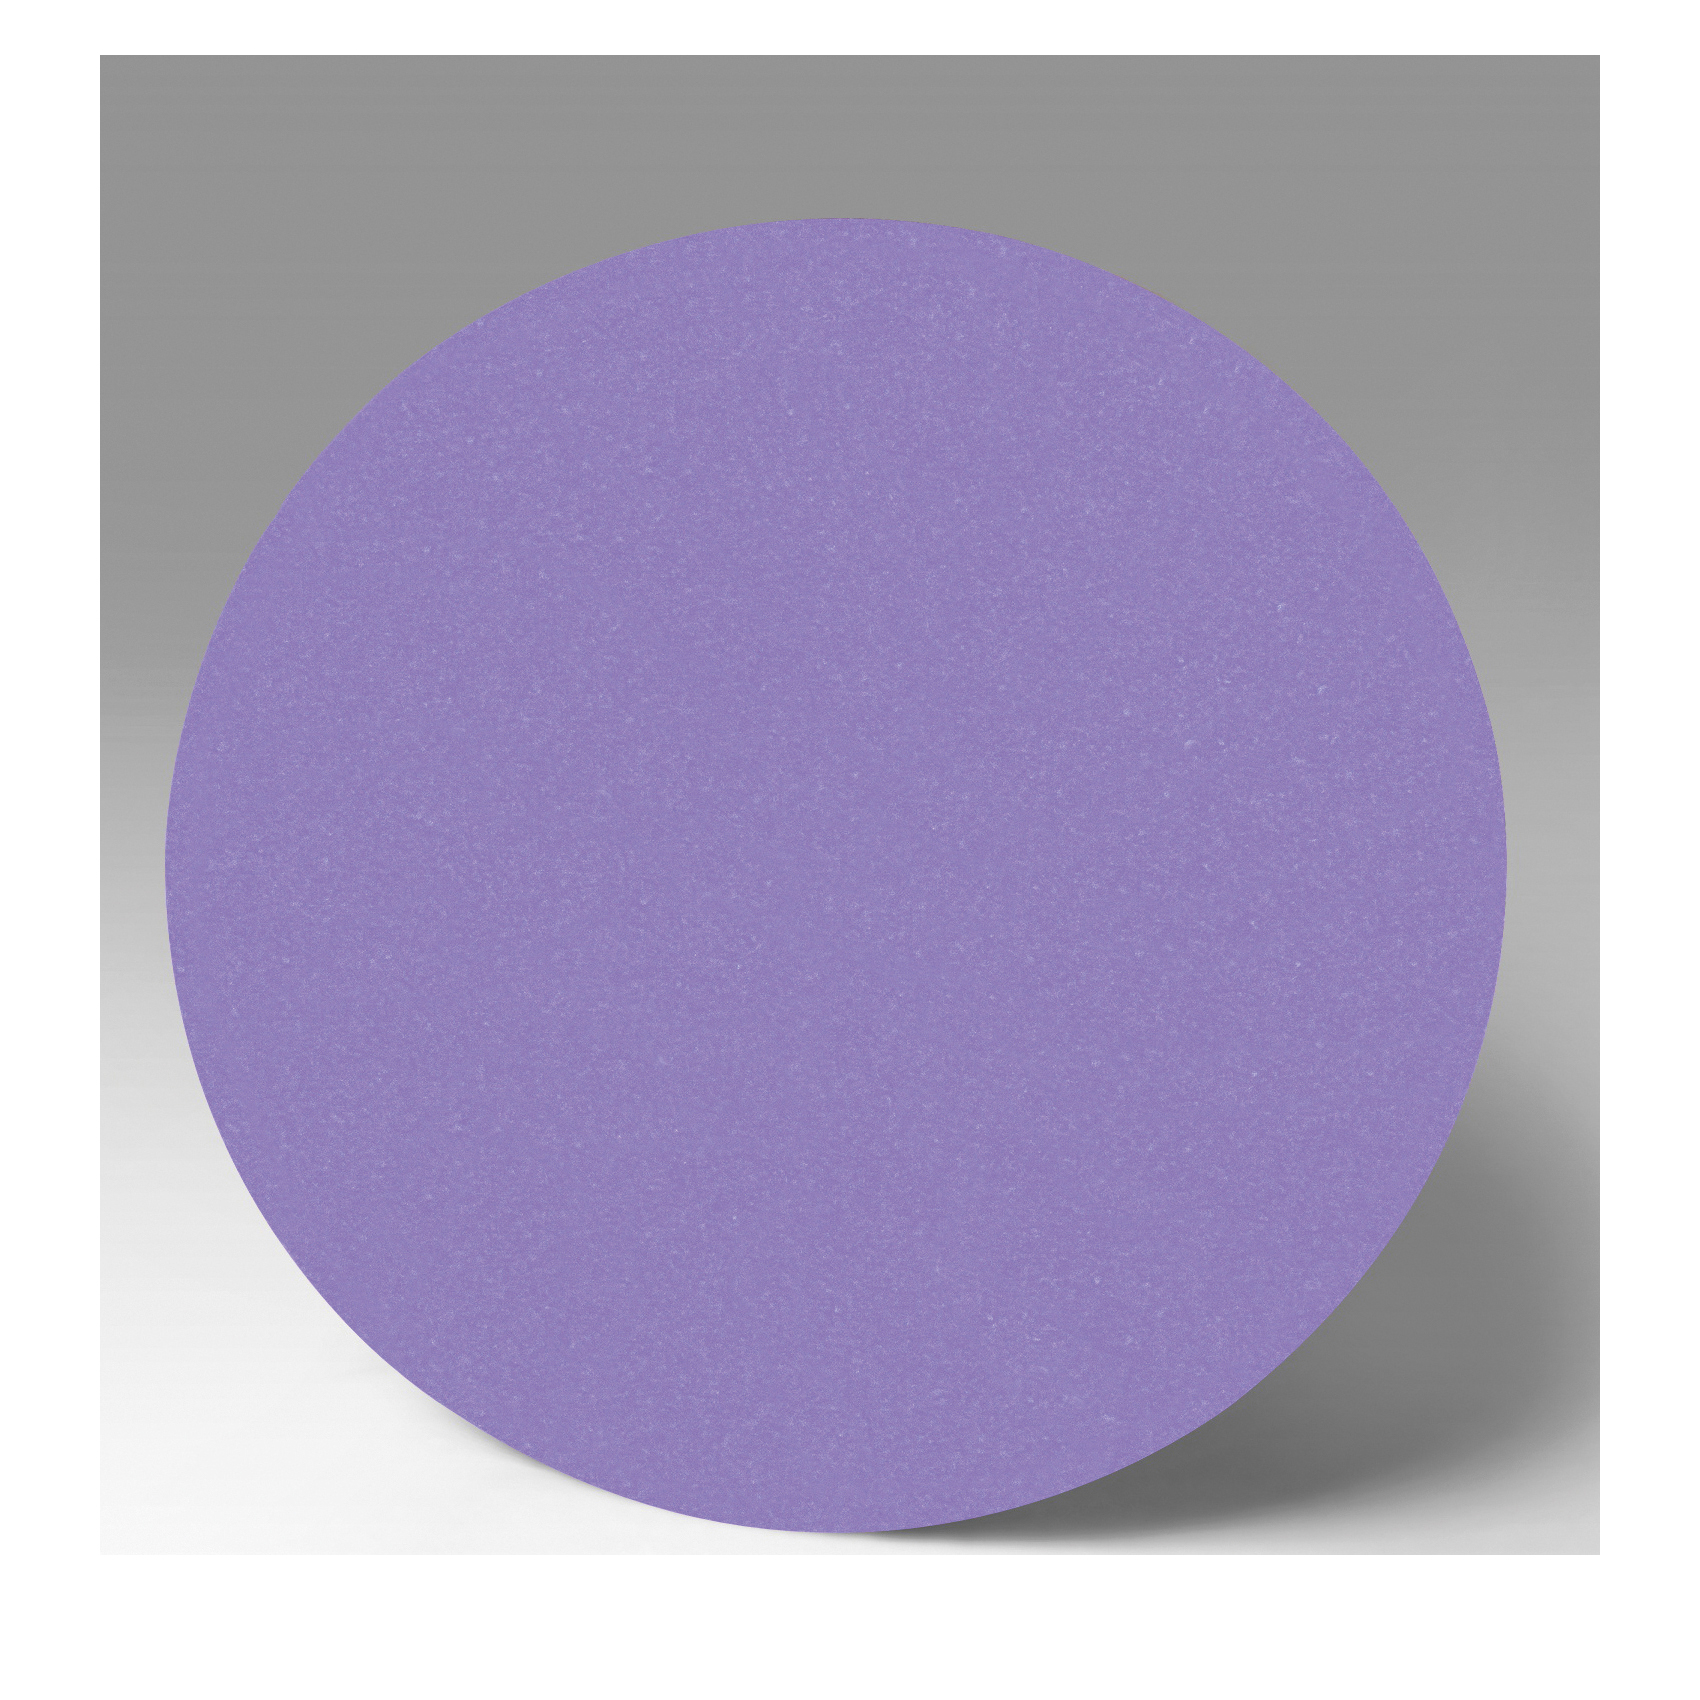 Stikit™ 051111-49642 Dust Free High Performance Open Coated Abrasive Disc, 5 in Dia, P180 Grit, Very Fine Grade, Ceramic Abrasive, Cloth Backing